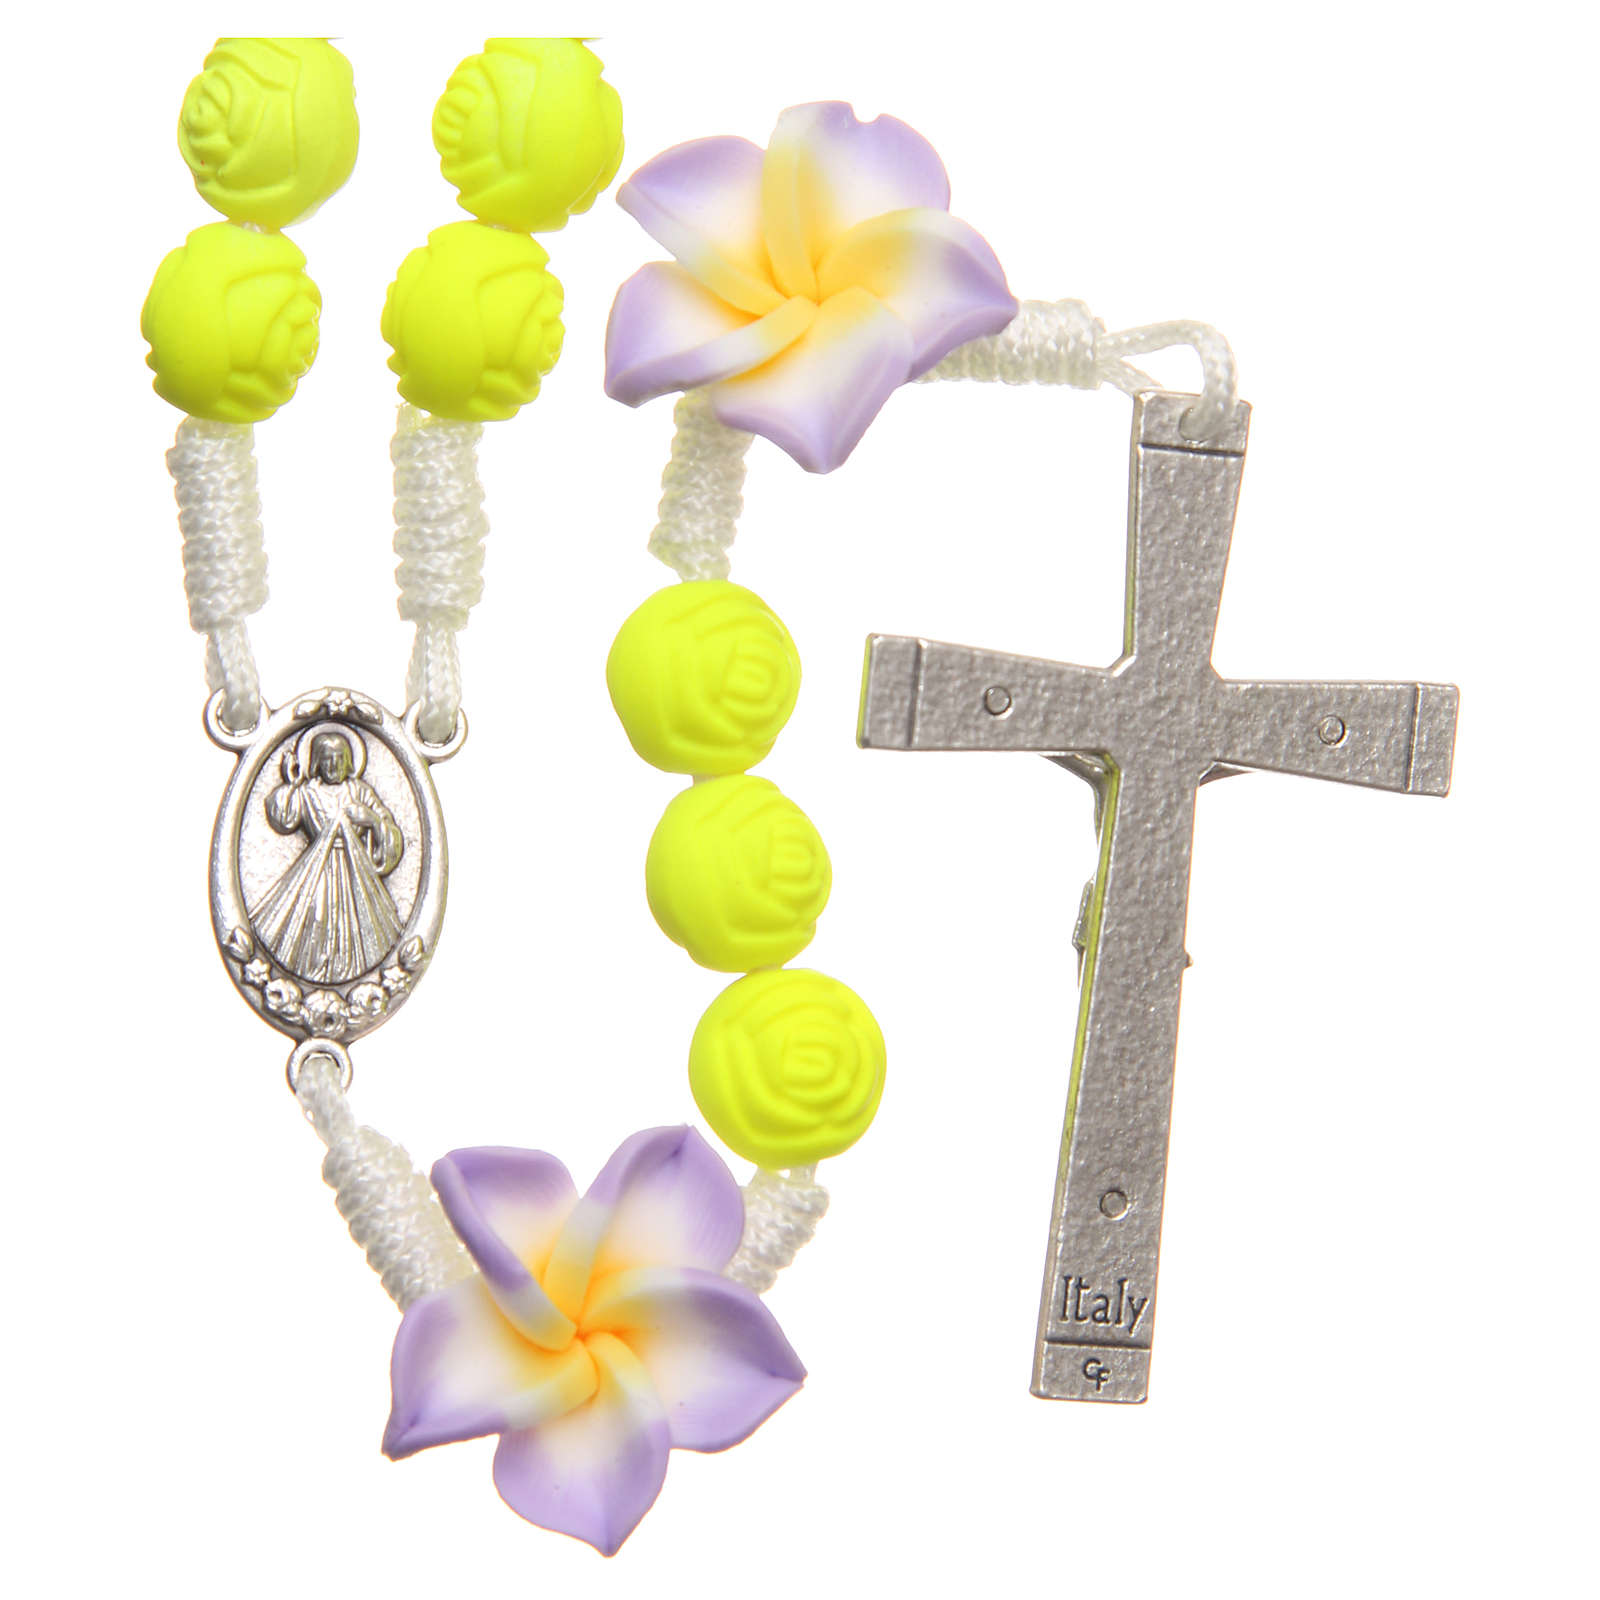 Medjugorje rosary beads with neon yellow roses 4